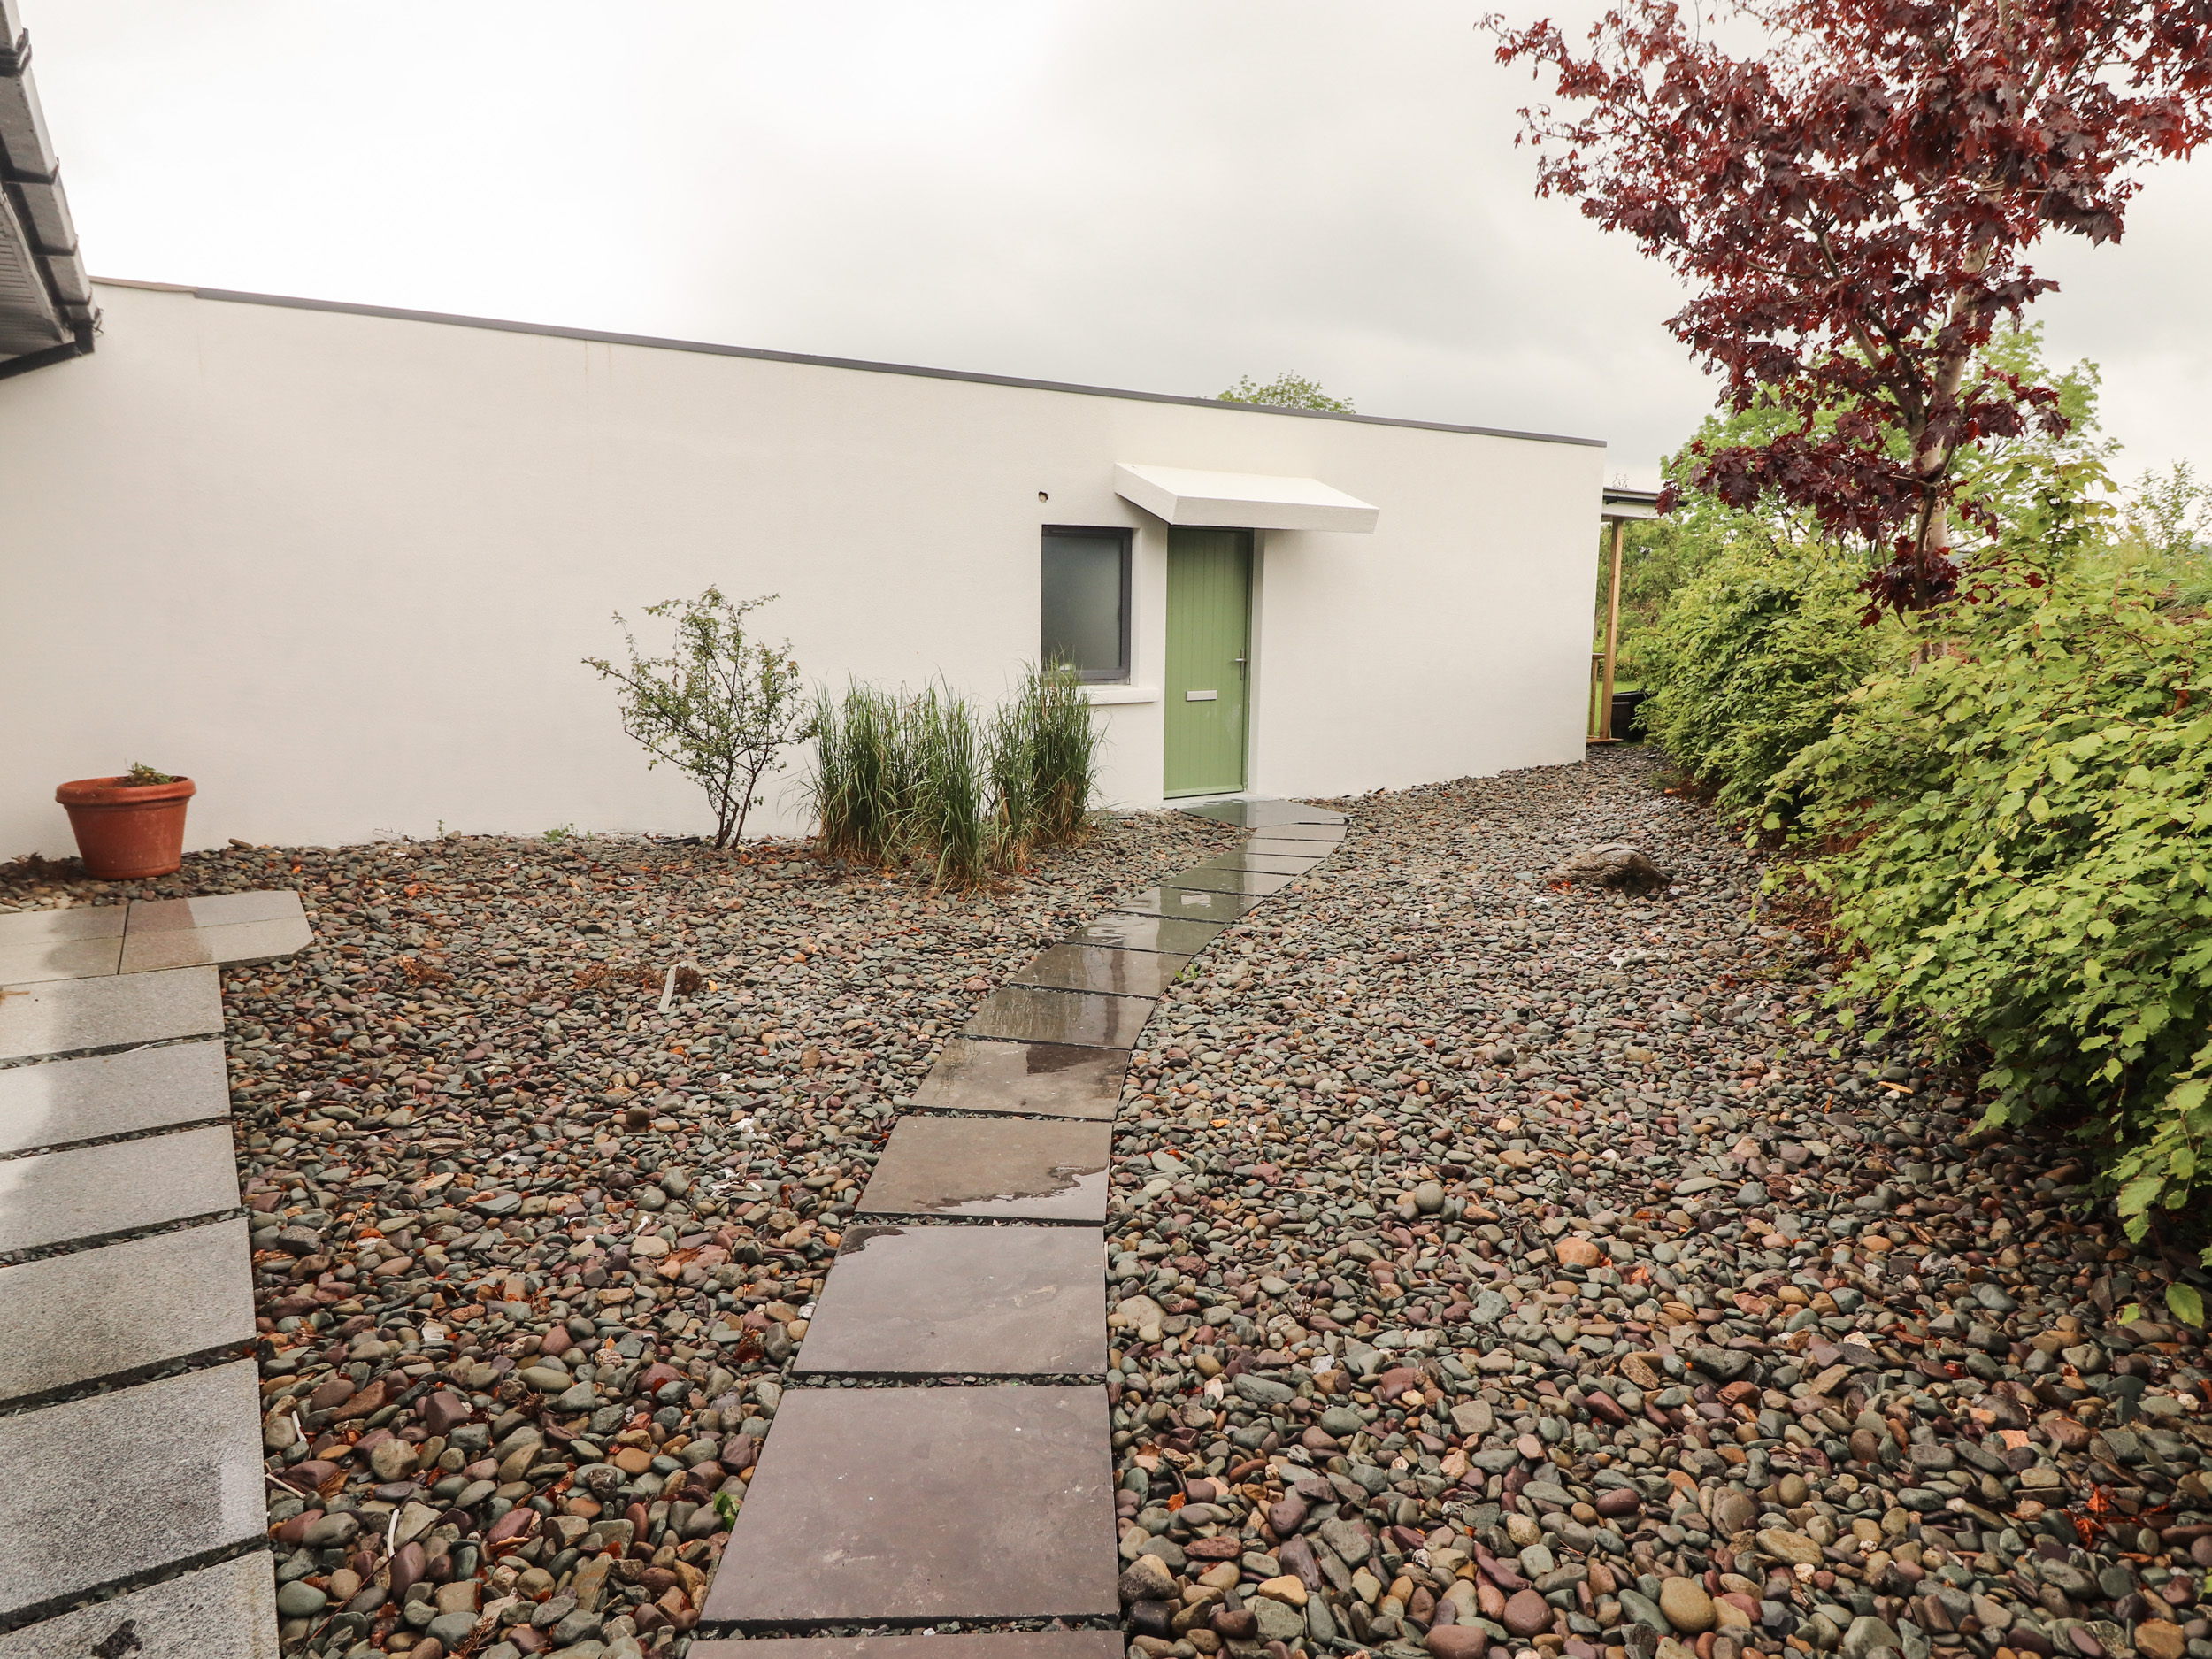 Apartment 1, County Kerry